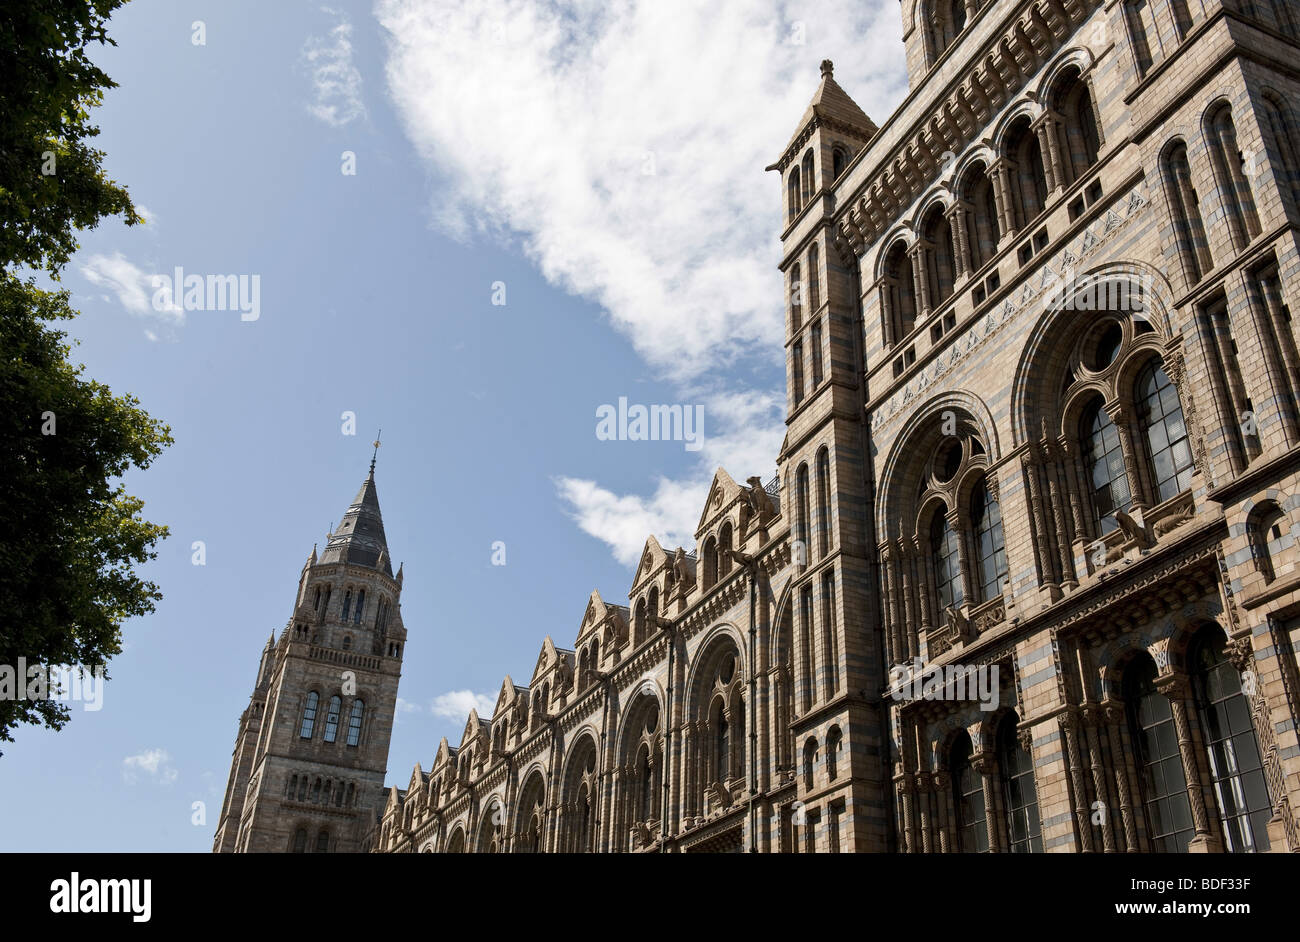 Section of the architectural stone detailing on the external facade of The Natural History Museum, London against Stock Photo